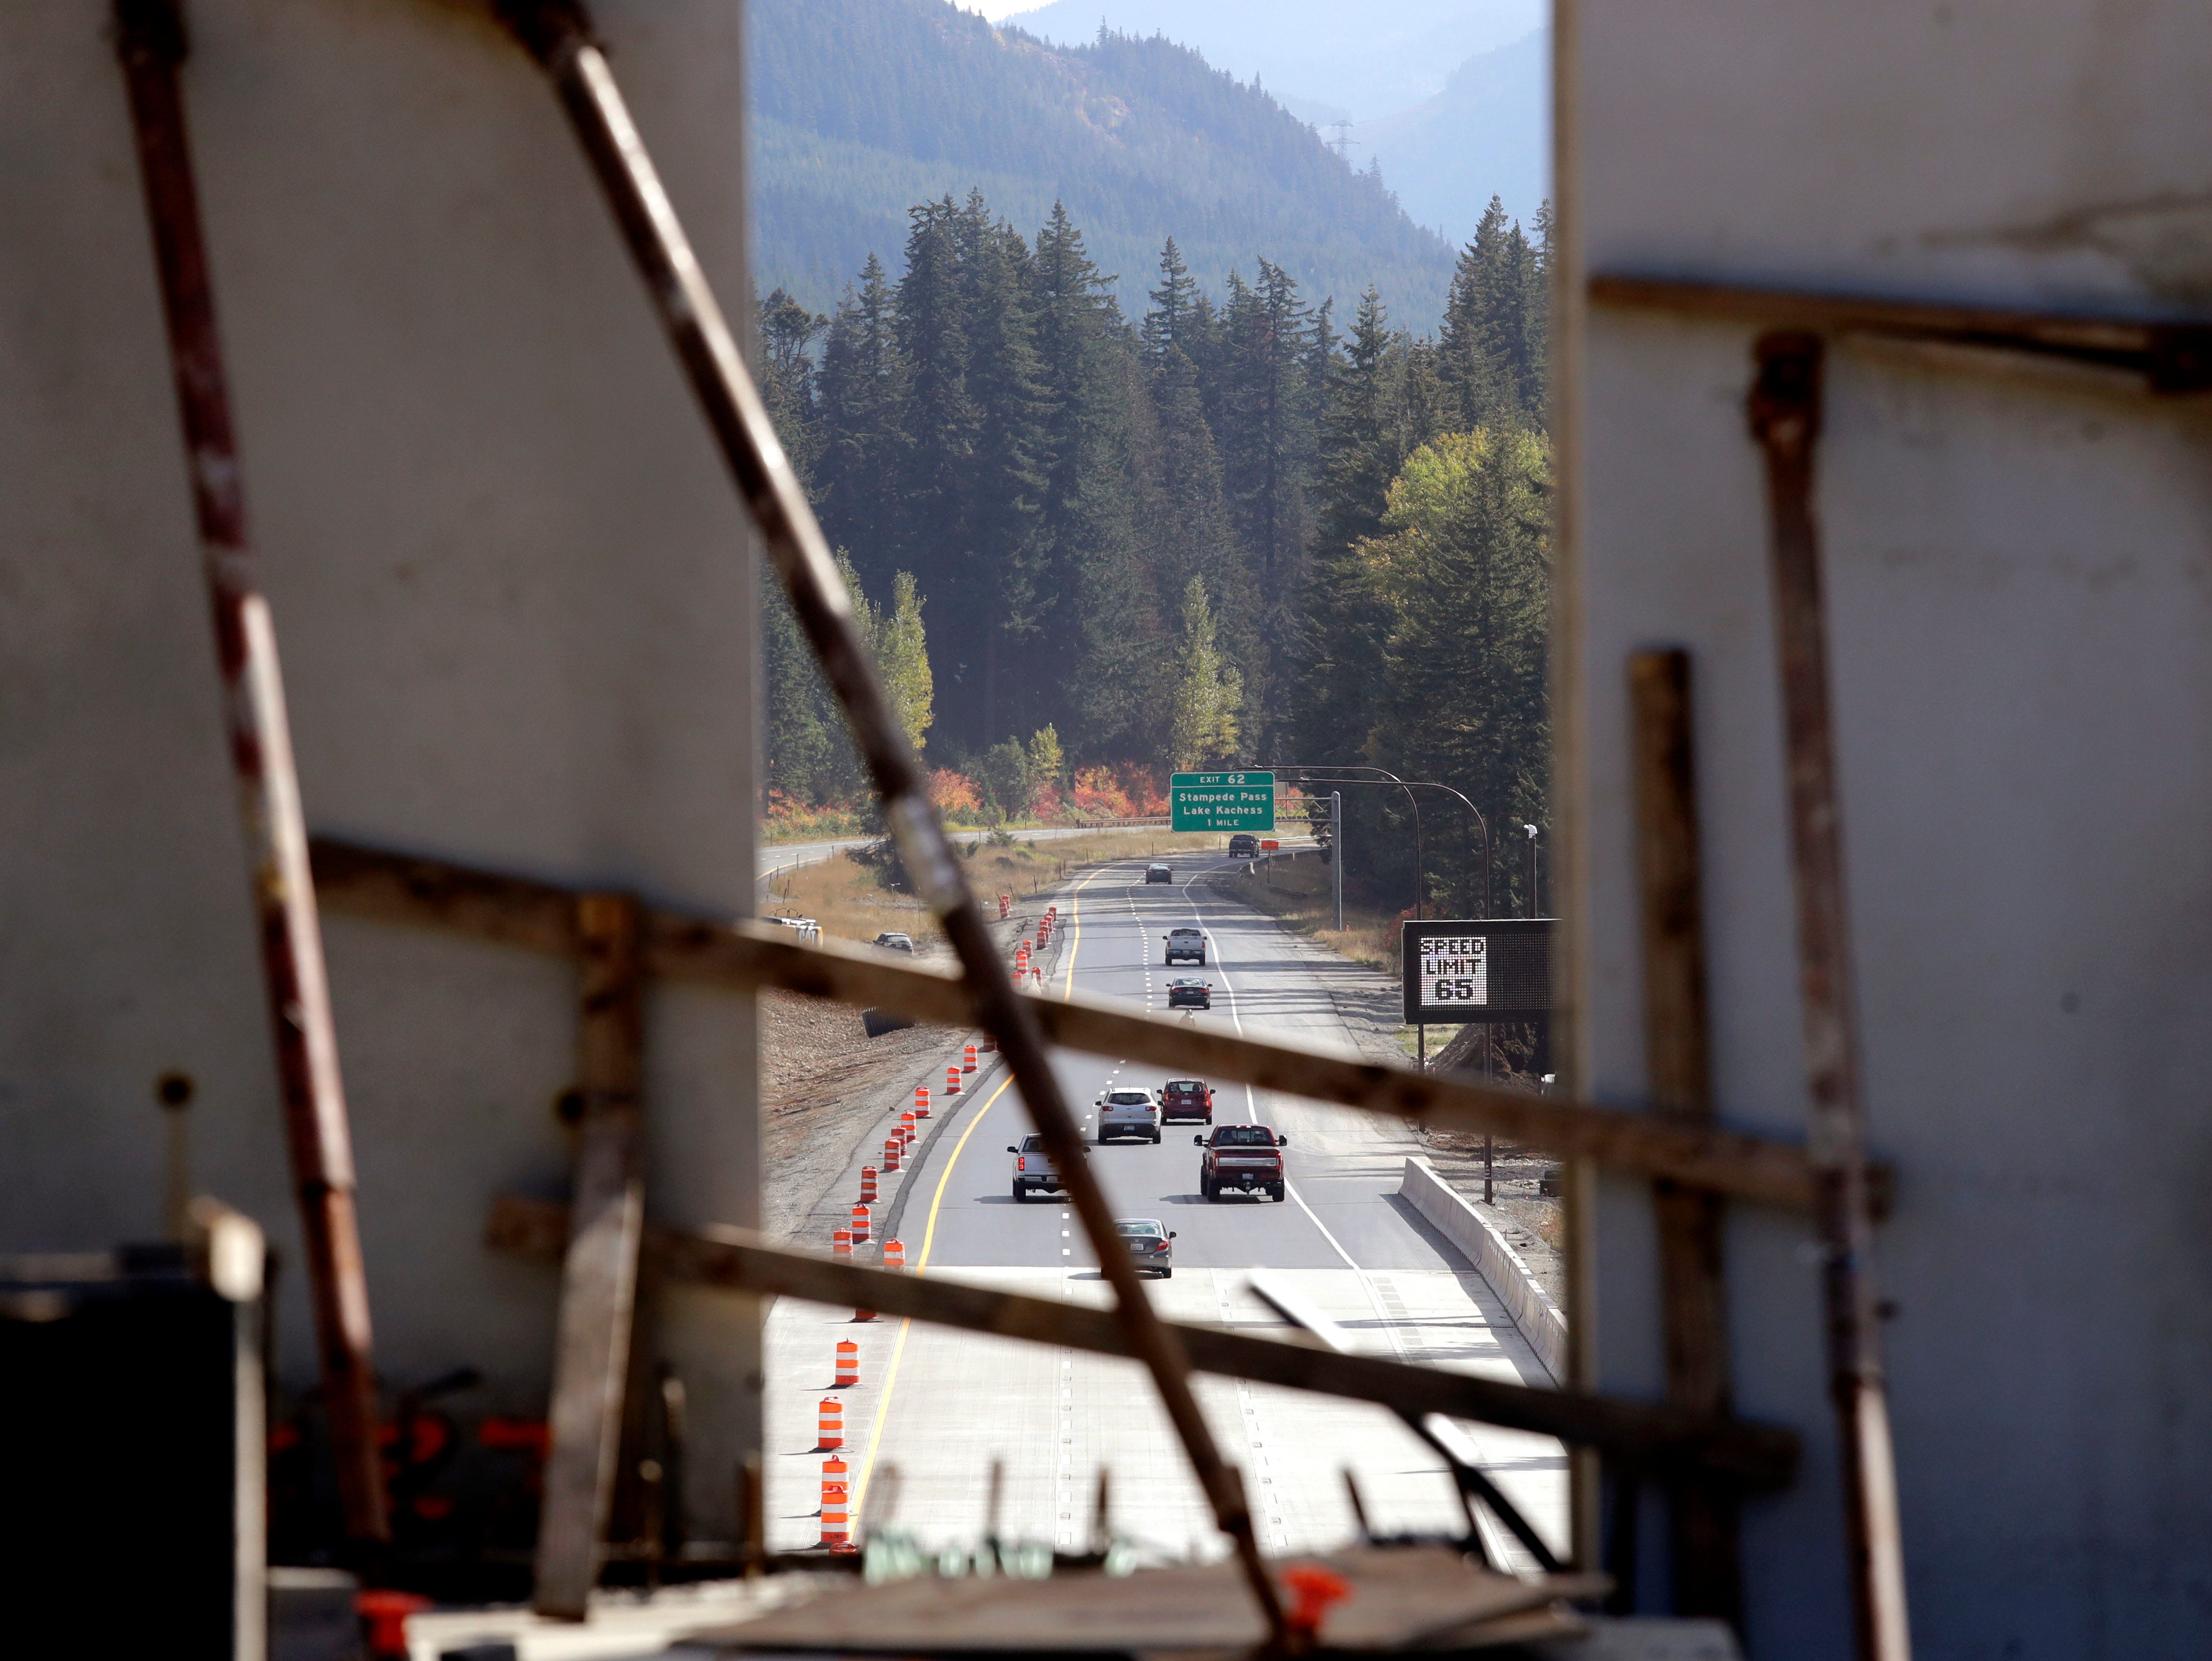 Interstate 90 traffic passes beneath a wildlife bridge under construction is seen through a gap where tall panels are being erected on Snoqualmie Pass, Wash. The stretch of highway crossing the Cascade Mountains cuts through old growth forest and wetlands, creating a dangerous border for wildlife everything from an elk down to a small salamander. The new crossing gives animals in these mountains a safer option for crossing the road: They'll be able to go above it. (AP Photo/Elaine Thompson)